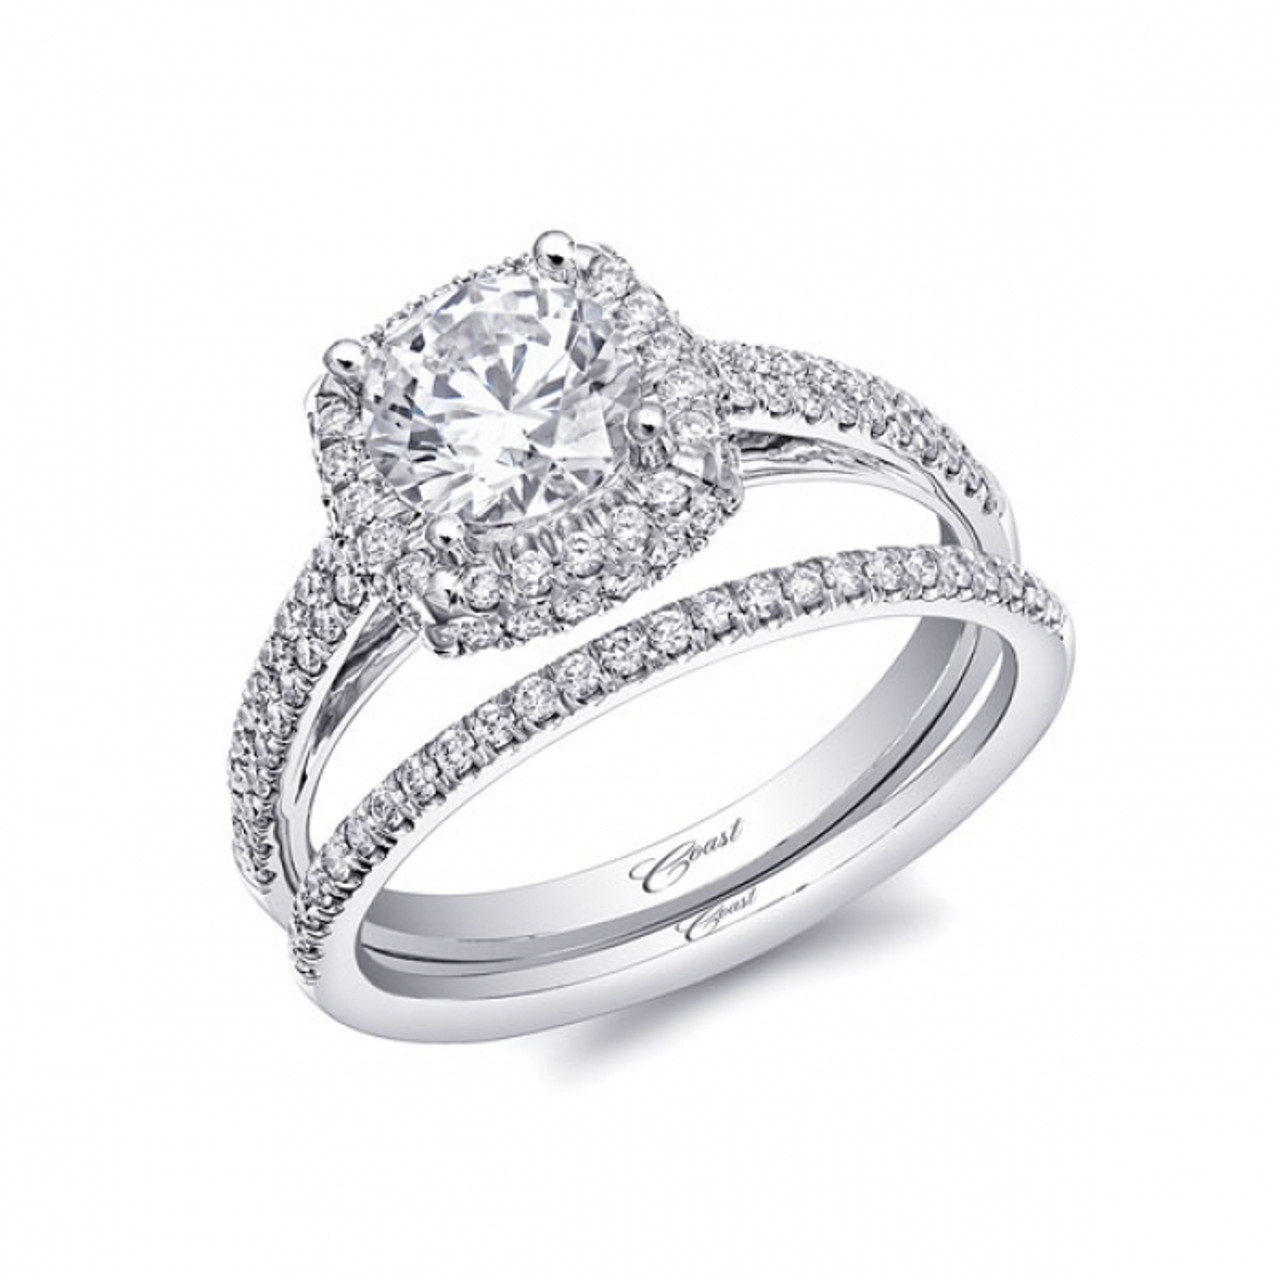 Cushion Double Halo Micro Pave Engagement Ring Setting (0